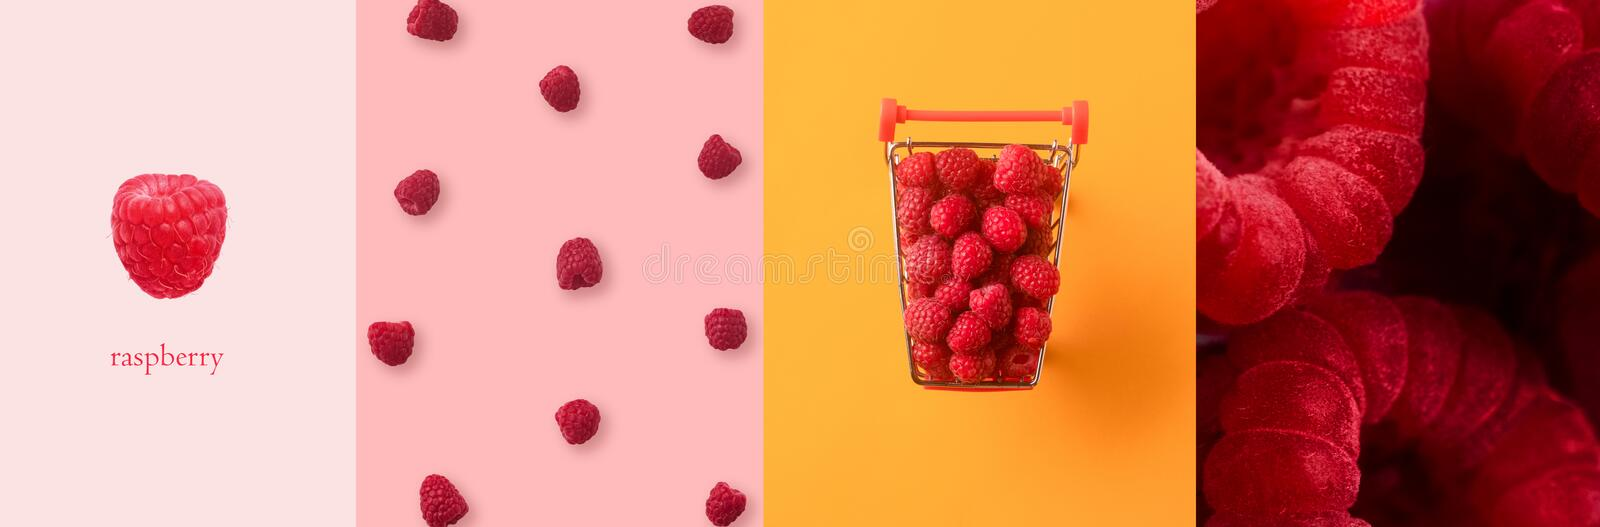 Raspberries panoramic collage royalty free stock photo